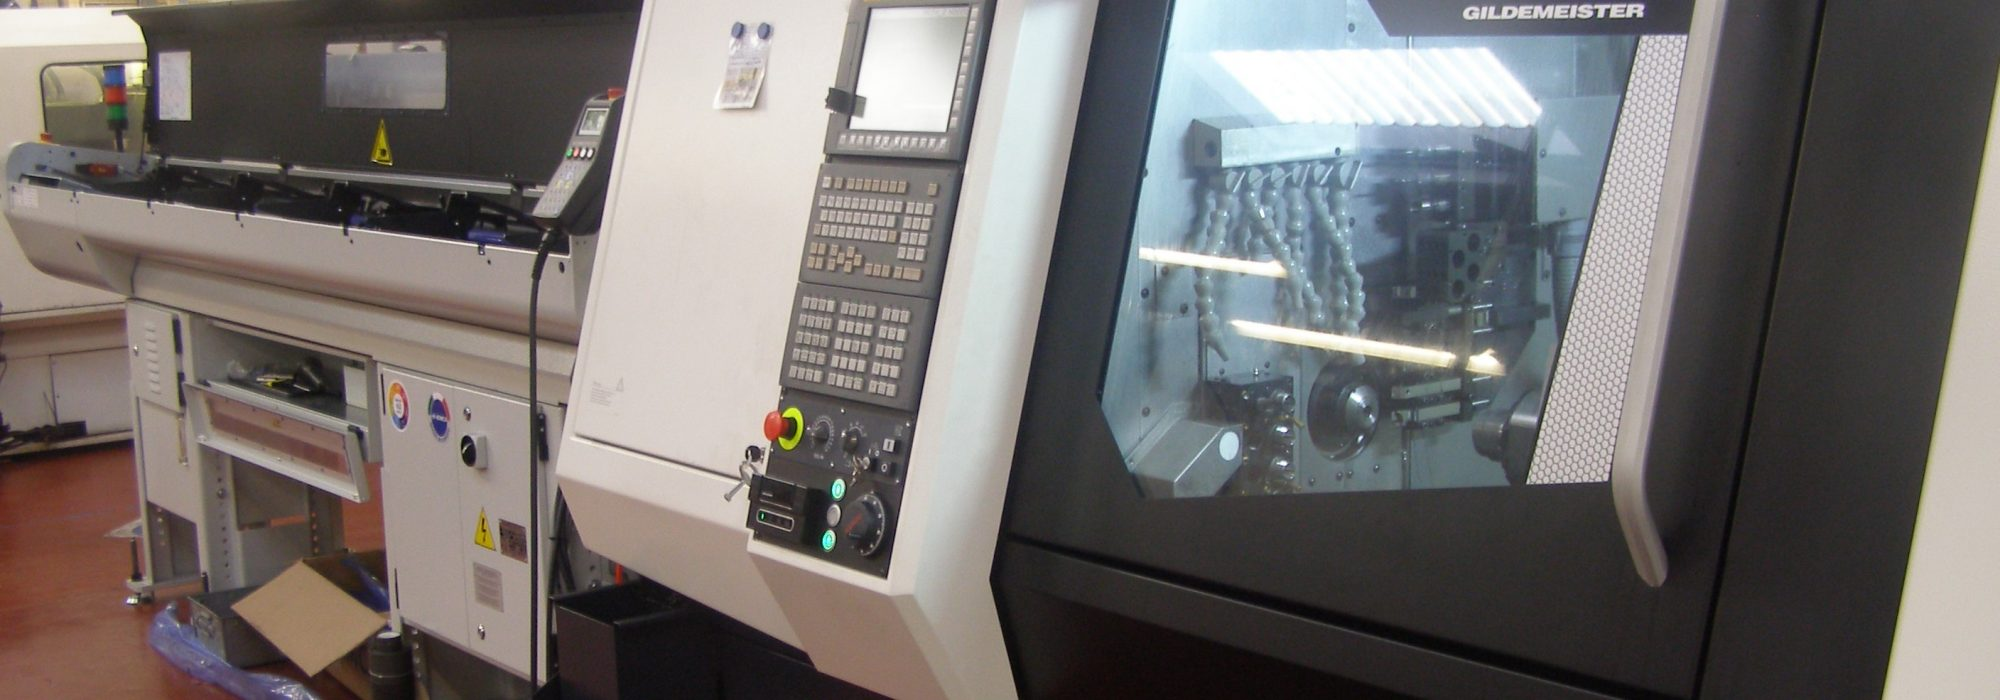 Final Image 2000x700 - Investment in a Second CNC Lathe to Further Enhance Production and New Product Development Capabilities